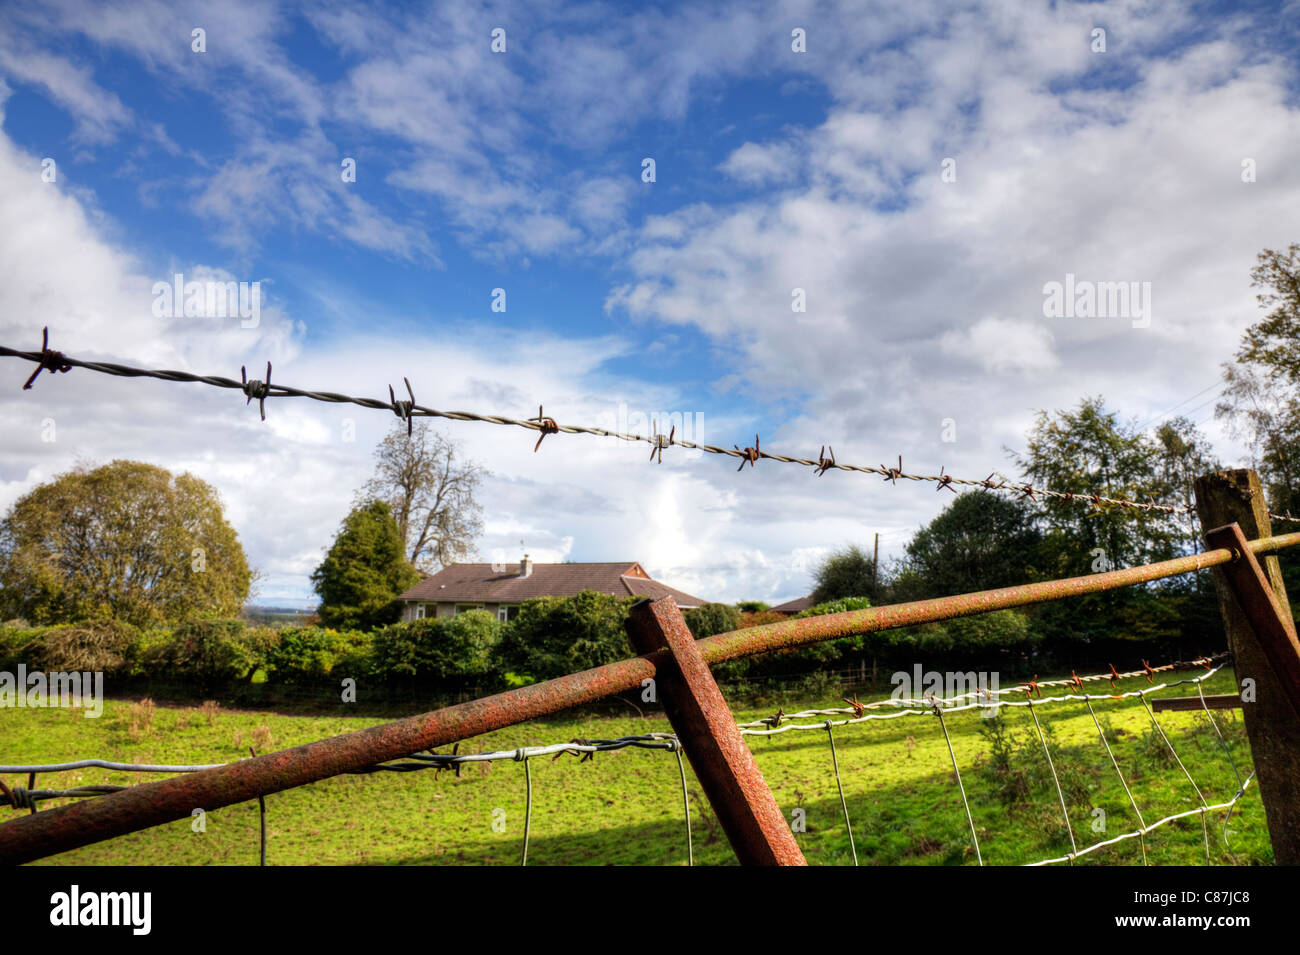 Close detail of a barb, barbed wire fence above an old rusty gate in front of a field in Gartmore, Scotland, Trossachs - Stock Image